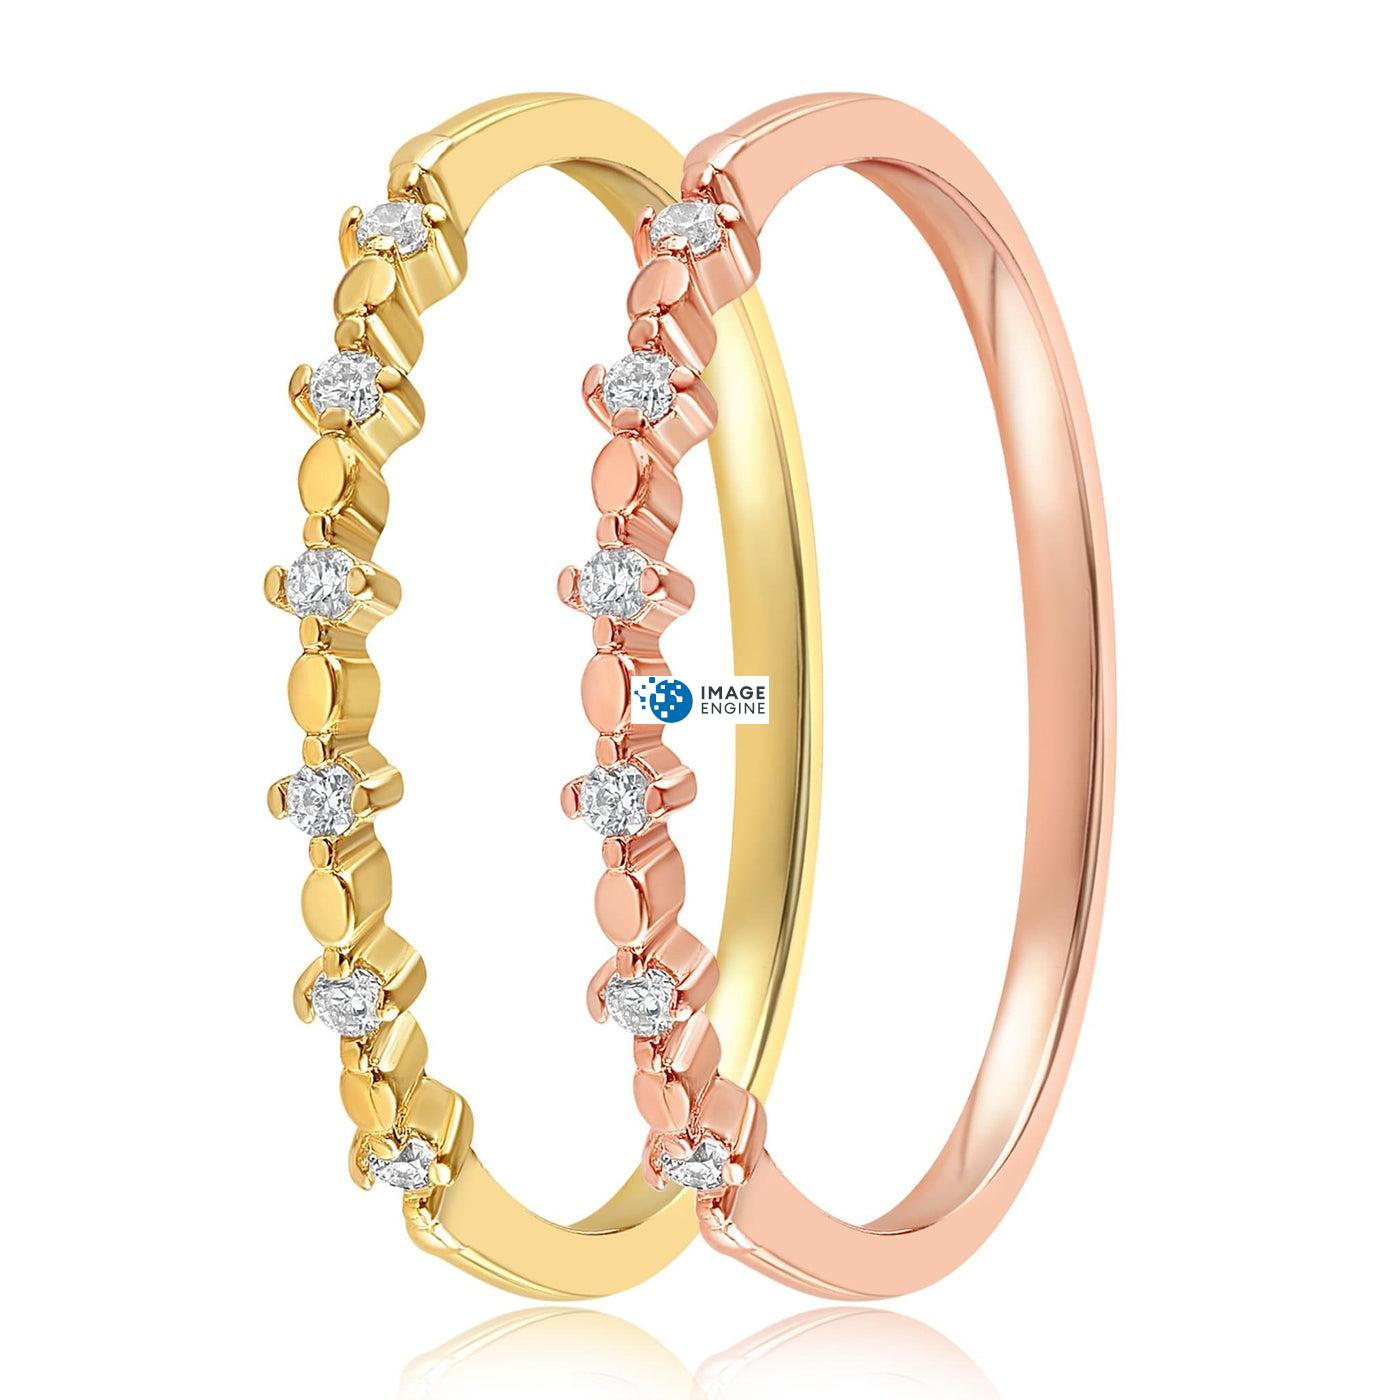 Nicolette Stackable Ring - Side by Side - 18K Yellow Gold Vermeil and 18K Rose Gold Vermeil